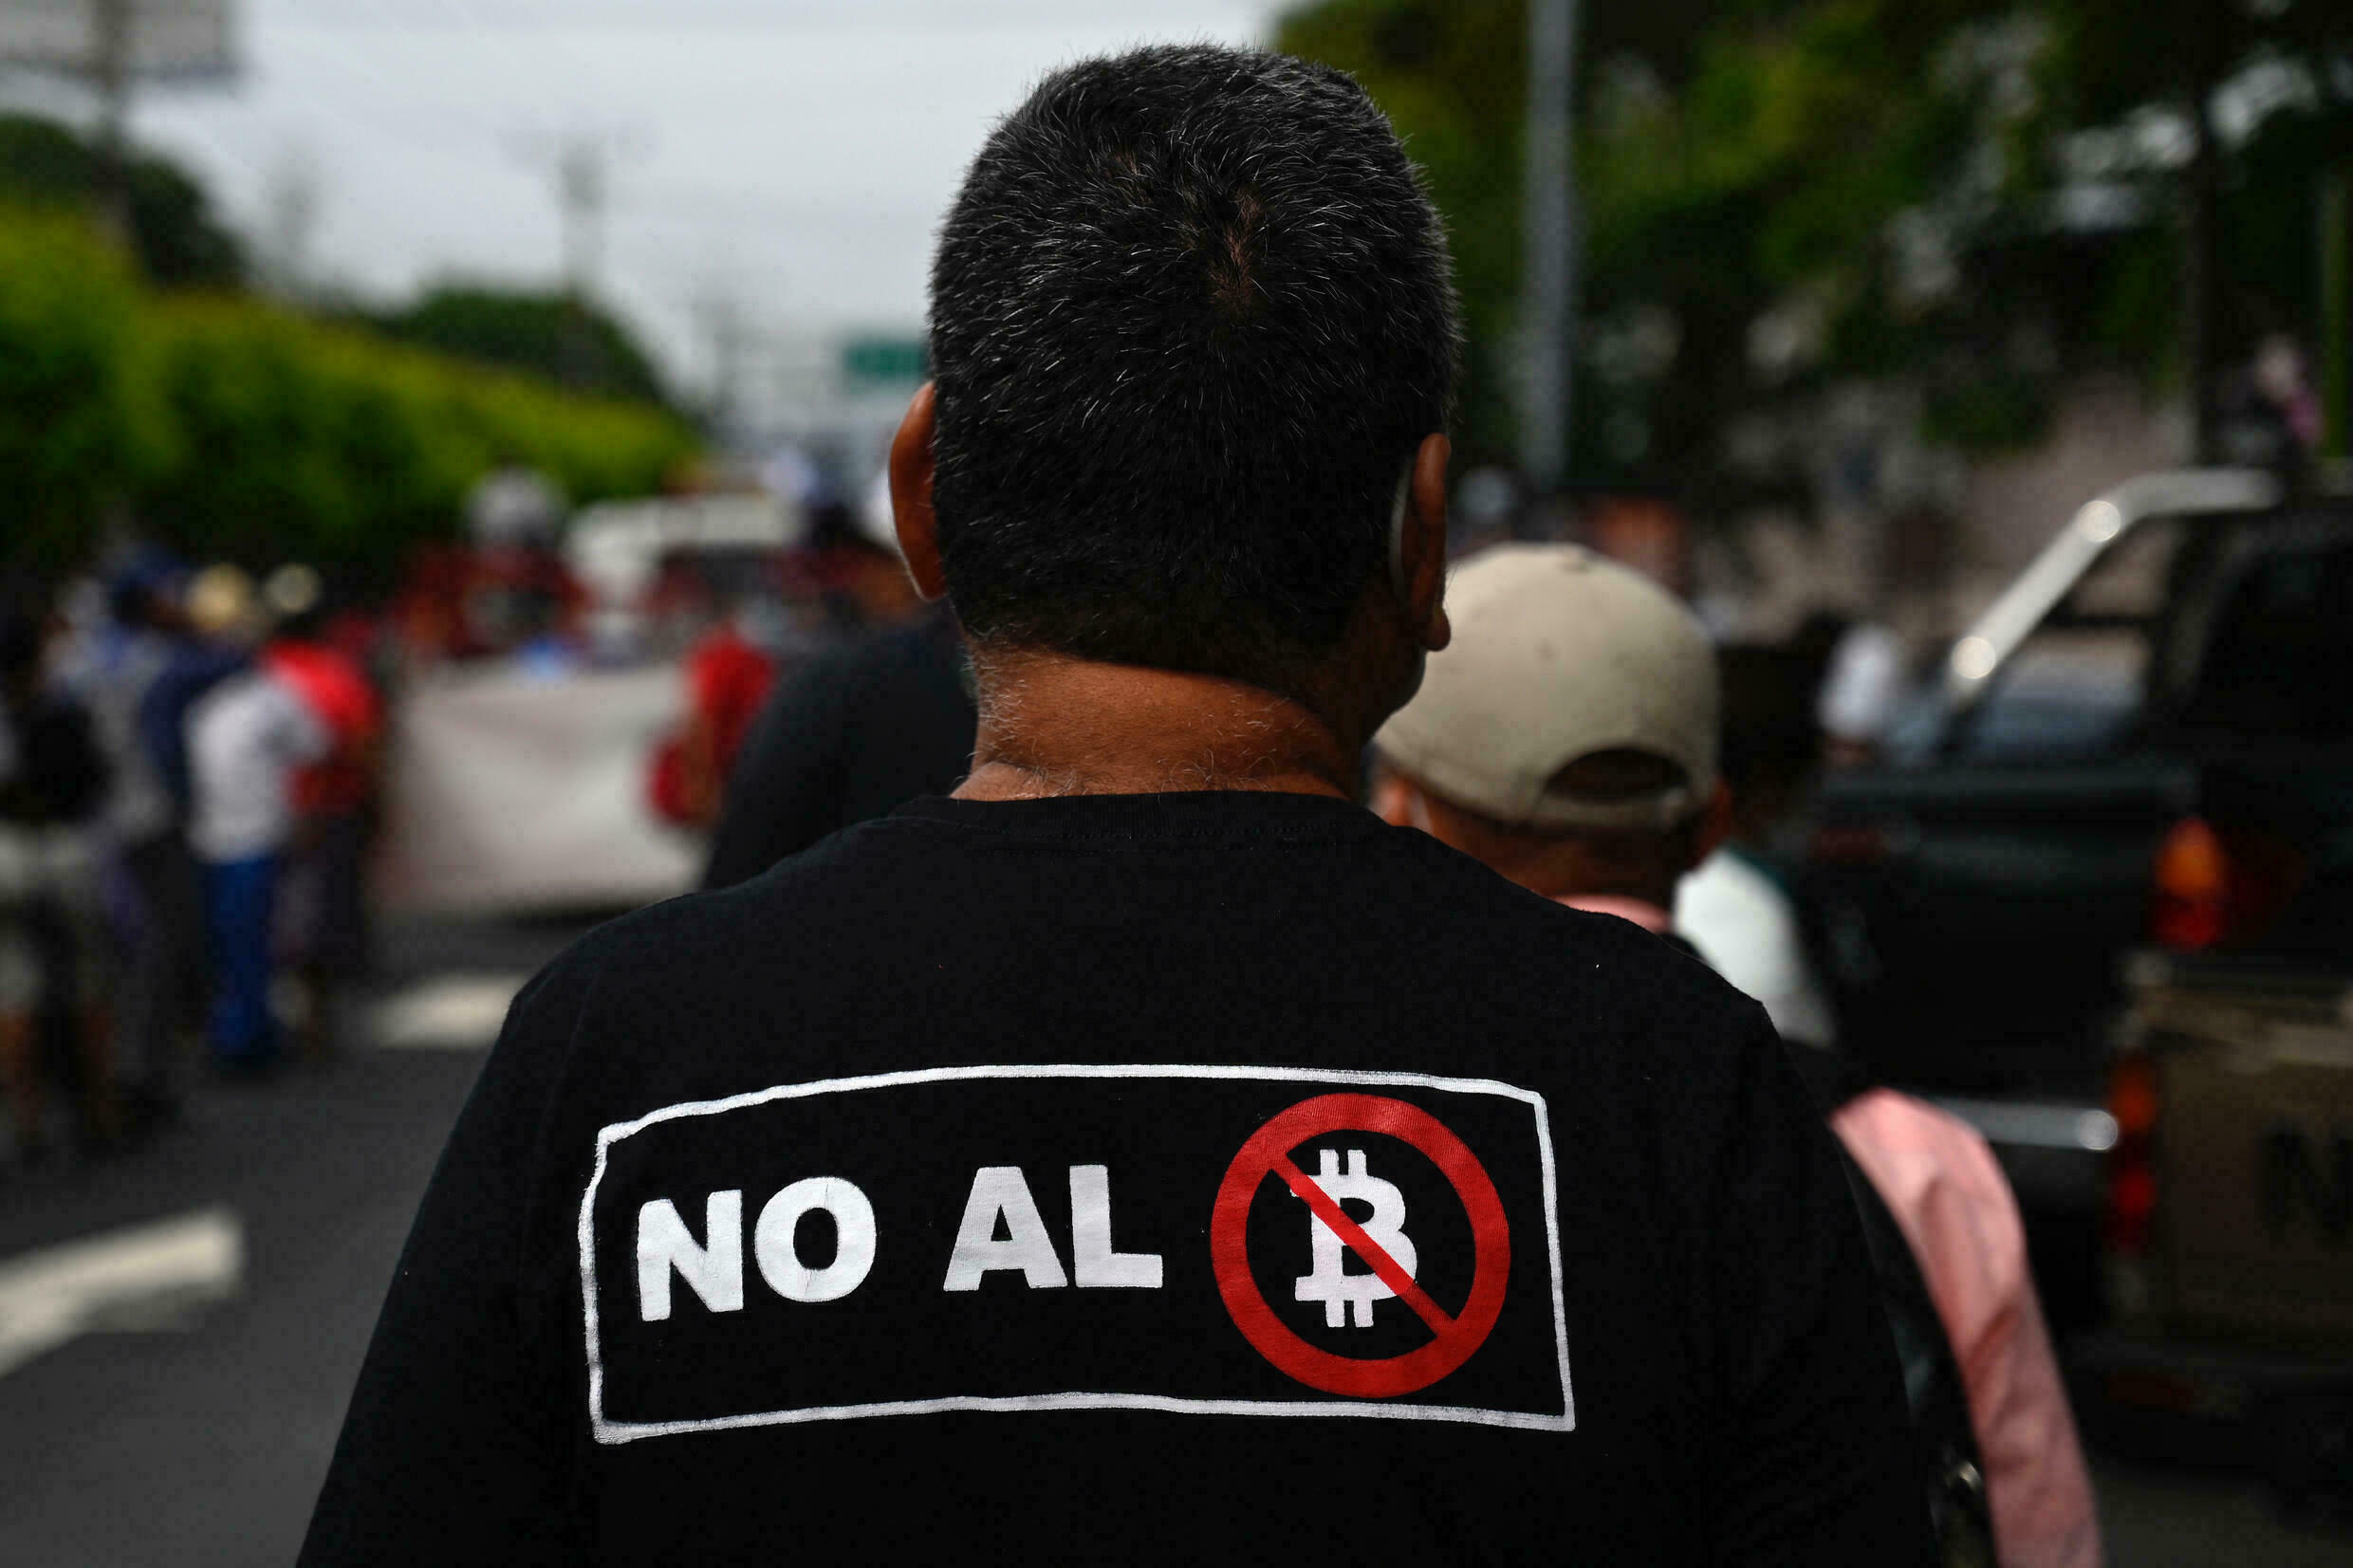 Veterans of the Salvadoran army and guerrillas marched through the streets of San Salvador on August 27, 2021 to protest specifically the arrival of bitcoin as the country's official currency.